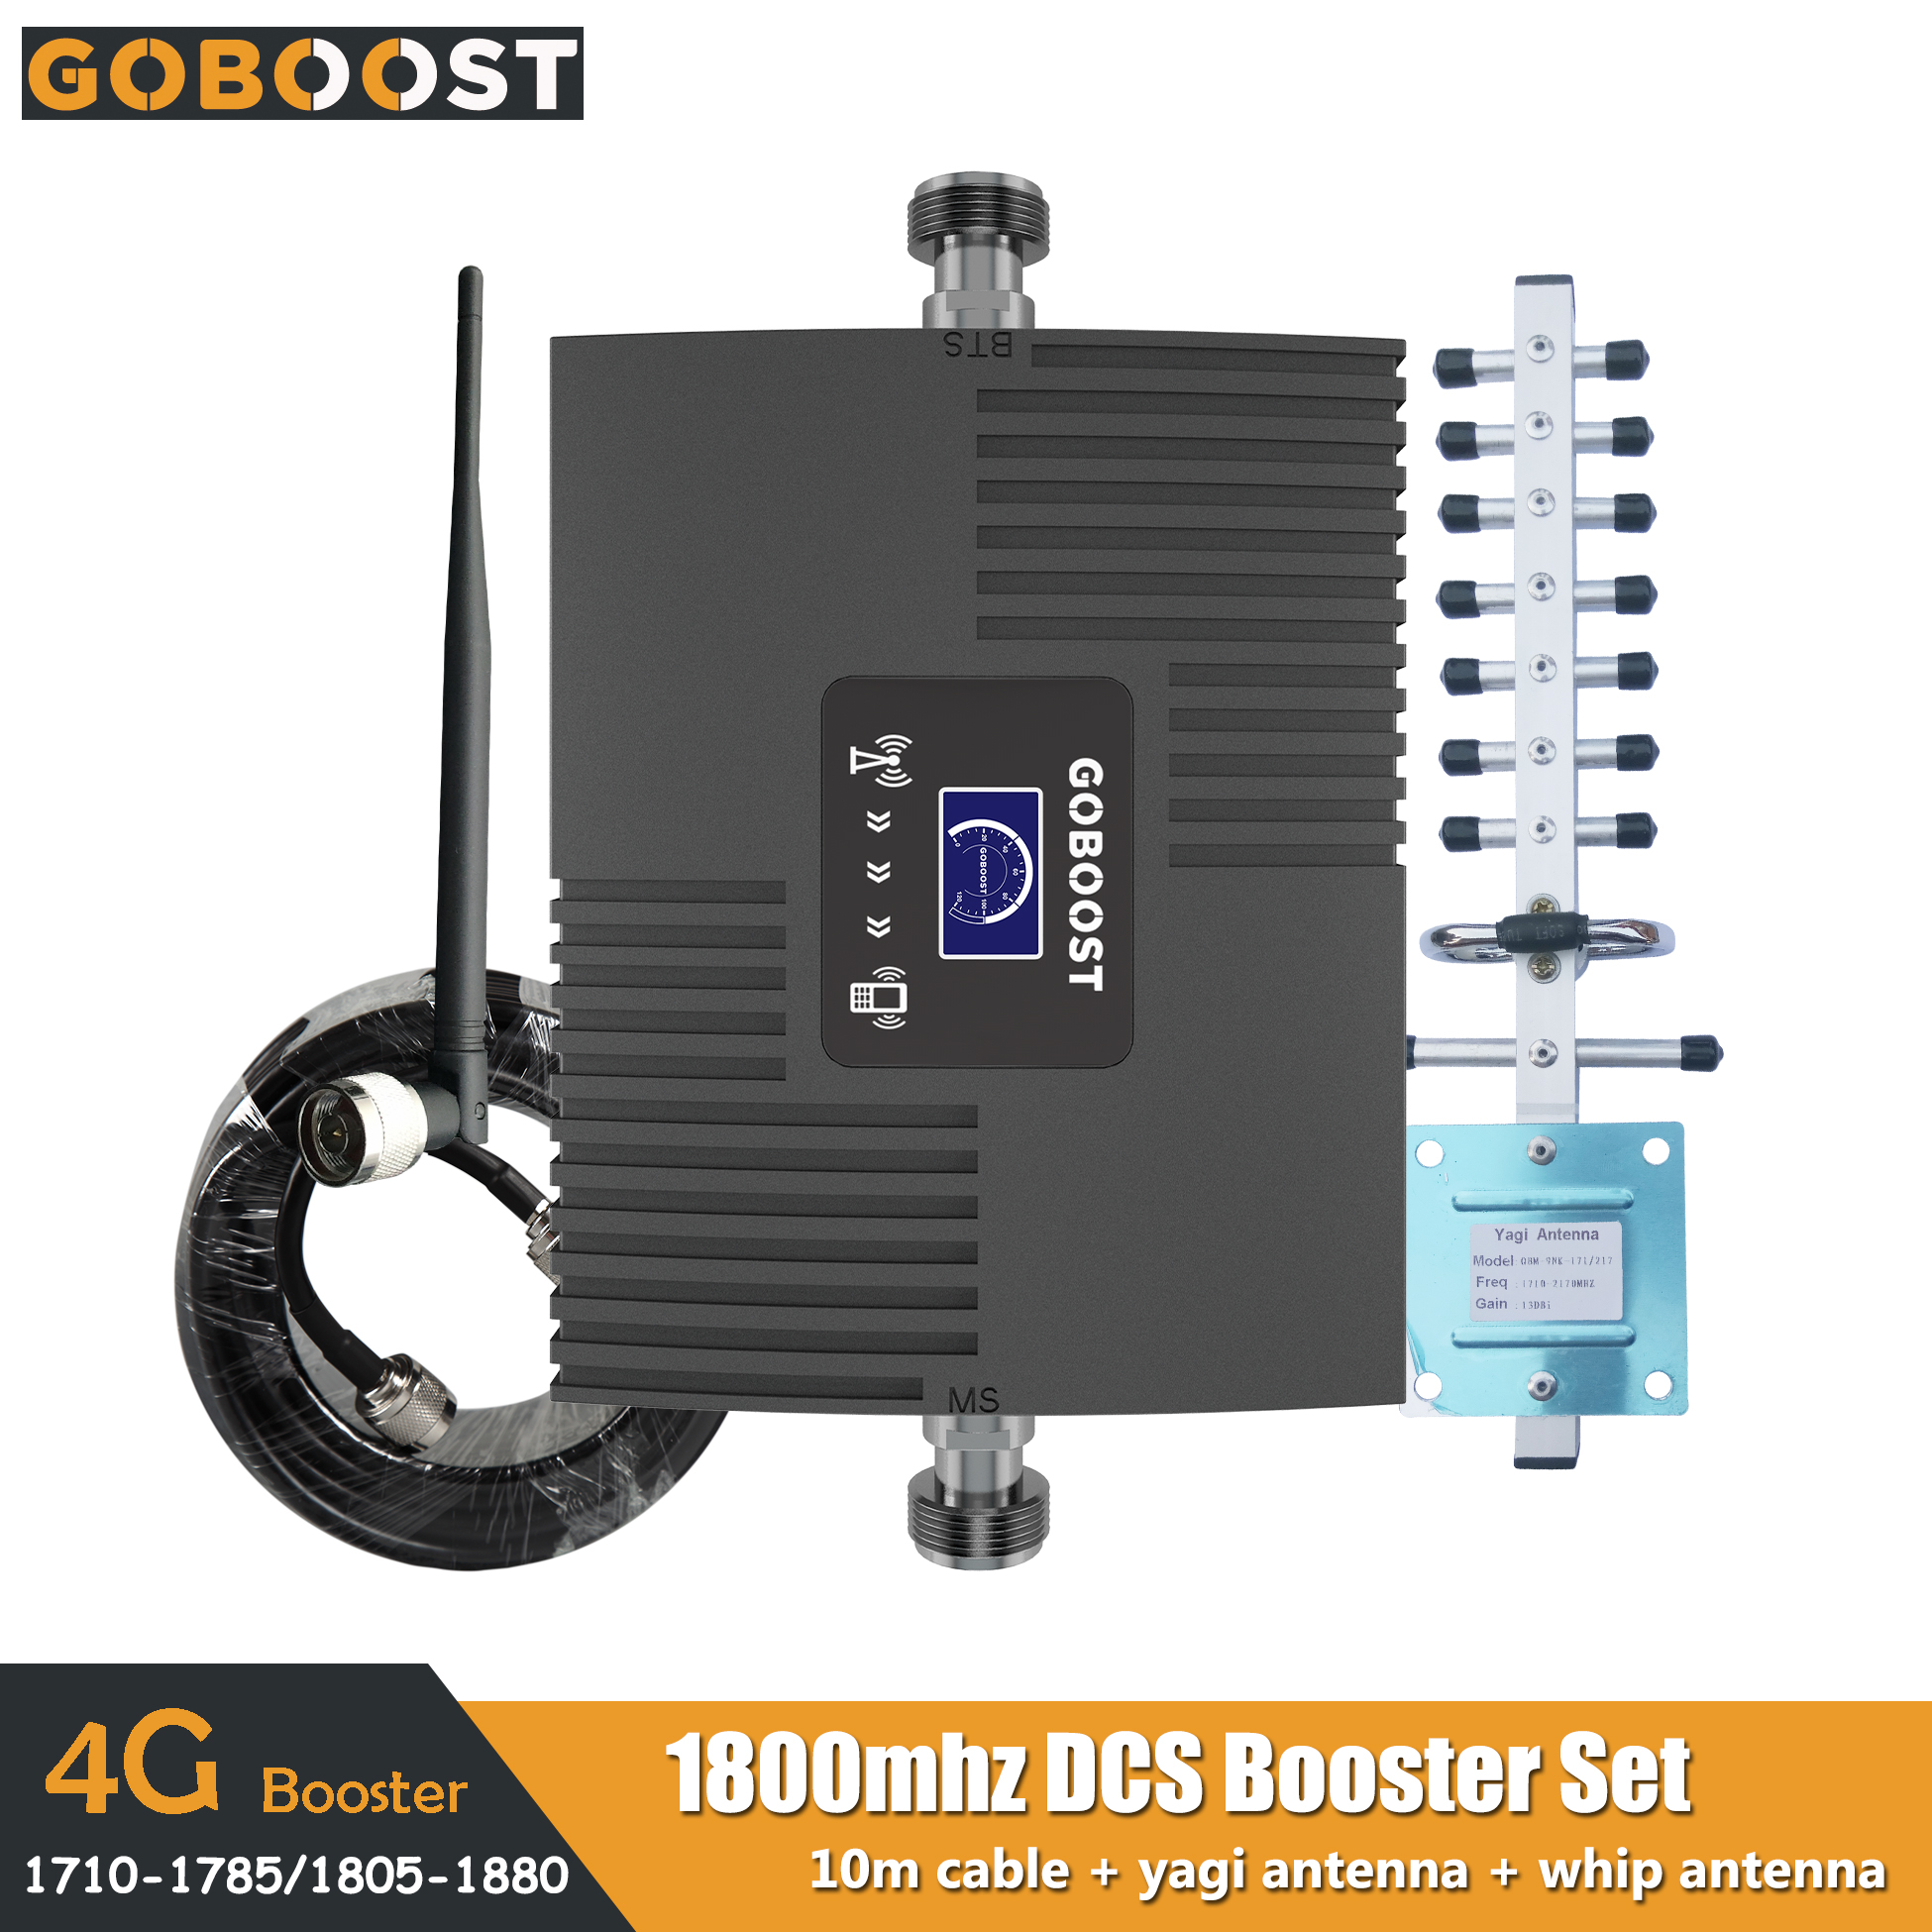 GOBOOST 4G Signal Booster LCD Display Cell Phone Signal Amplifier Kit LTE DCS 1800 MHz Band3 Mini Moblie Repeater Set 65dB Gain